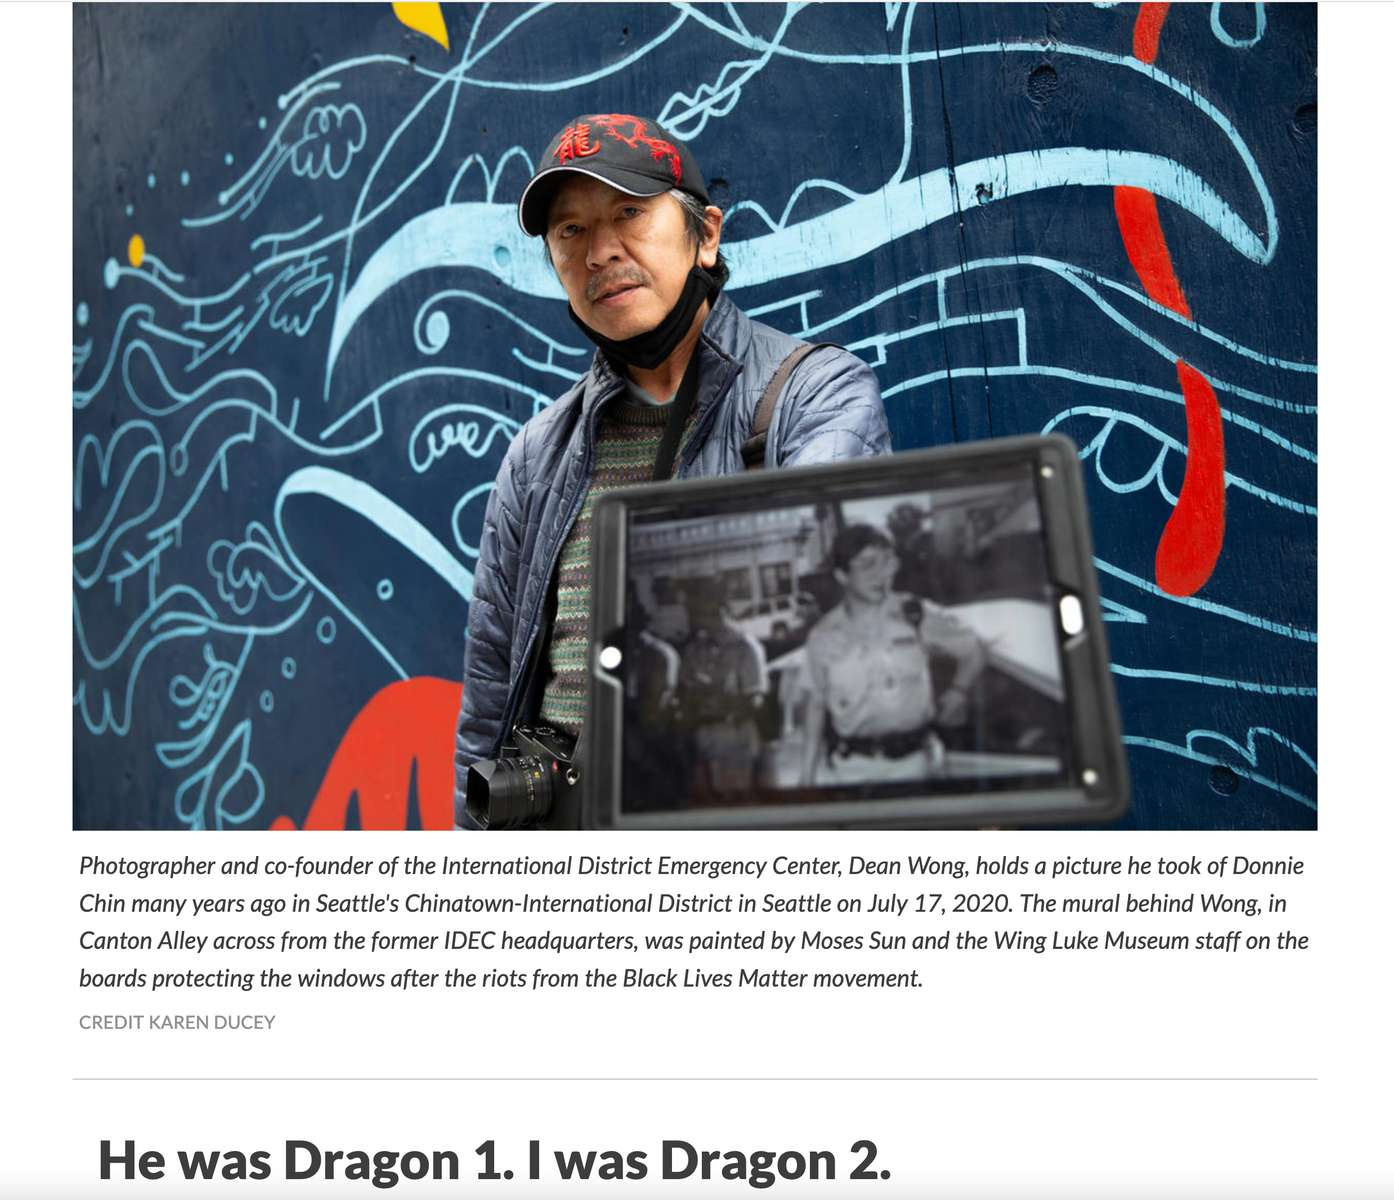 {quote}Five years after his death, Donnie Chin's legacy lives on in Seattle's International District {quote}, portrait series published by KNKX public radio on July 23,2020.